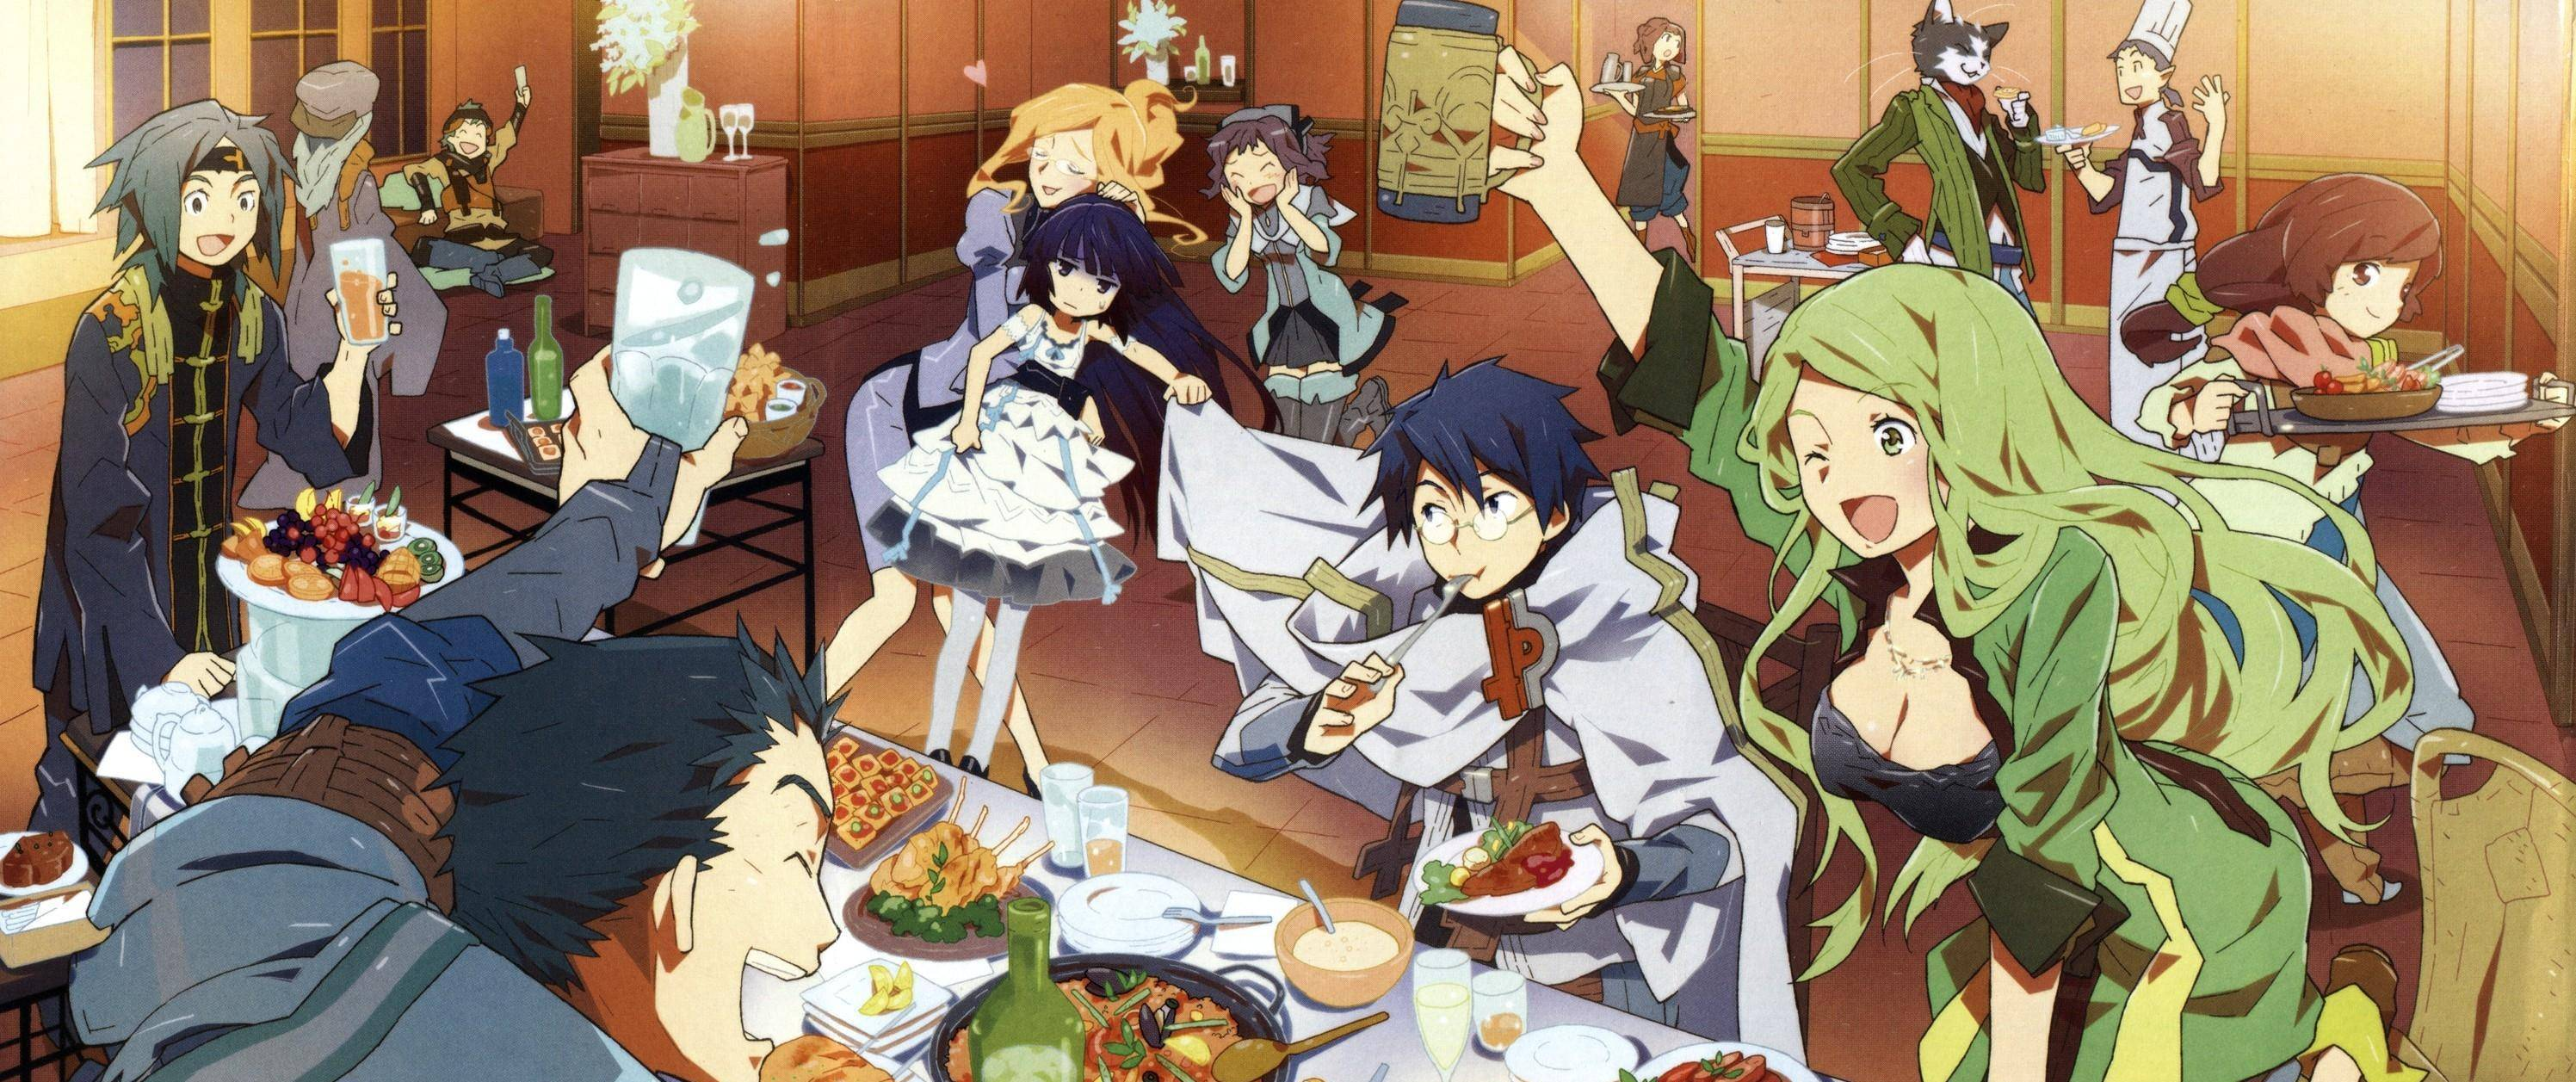 22533-log-horizon-log-horizon-party